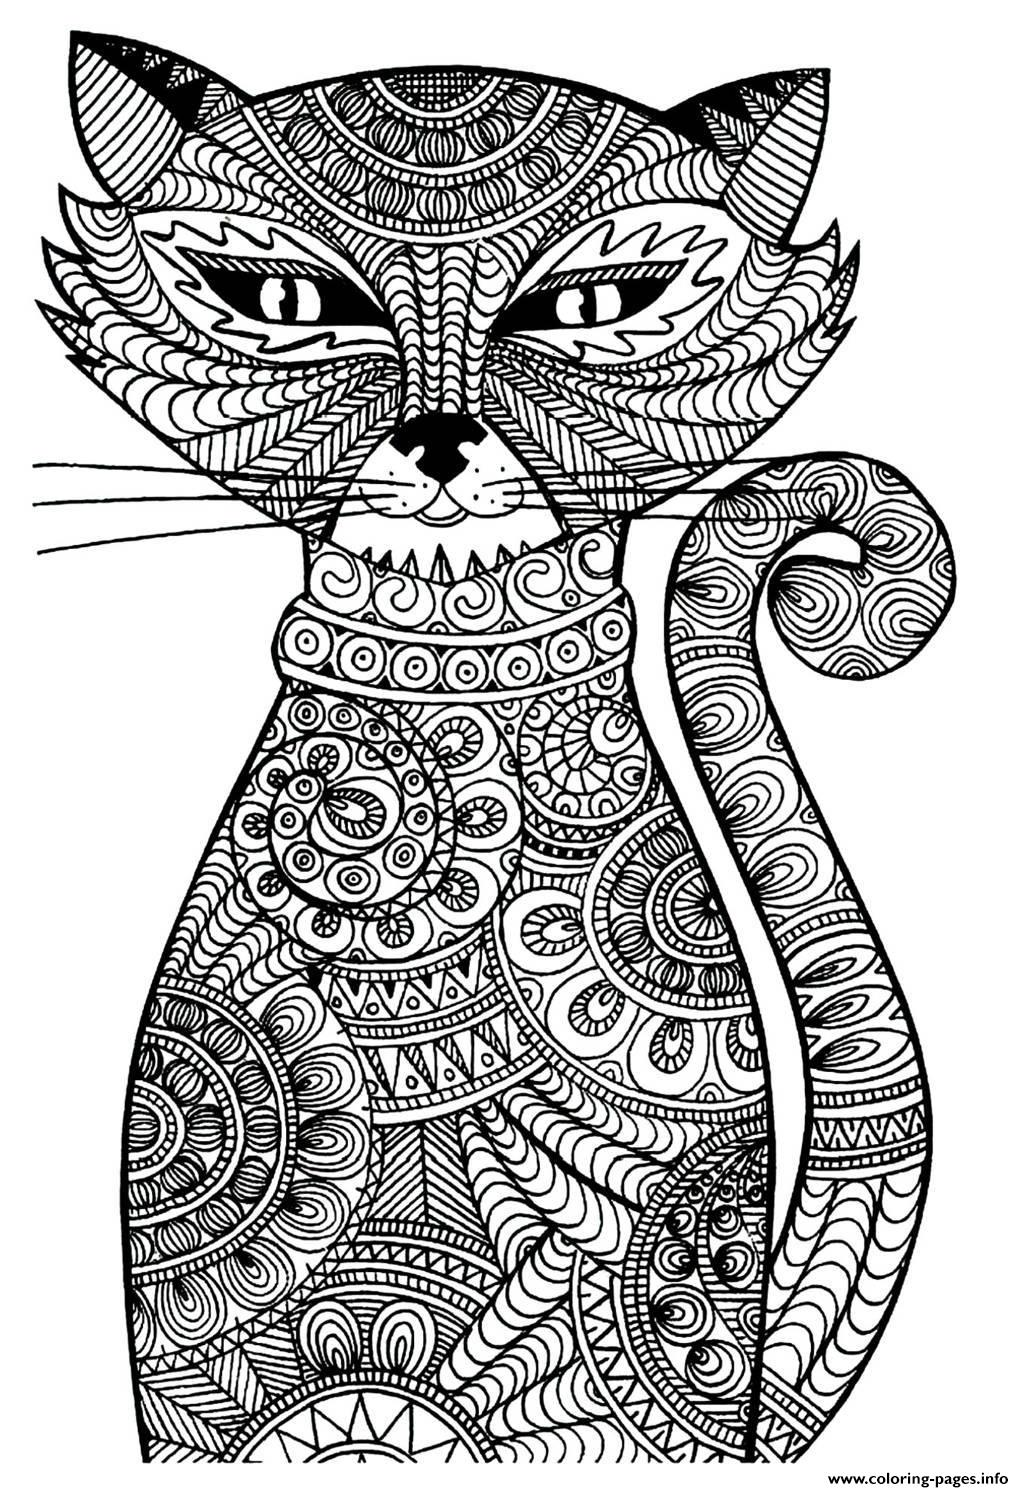 adult cat coloring pages - Cat Coloring Pages Printable